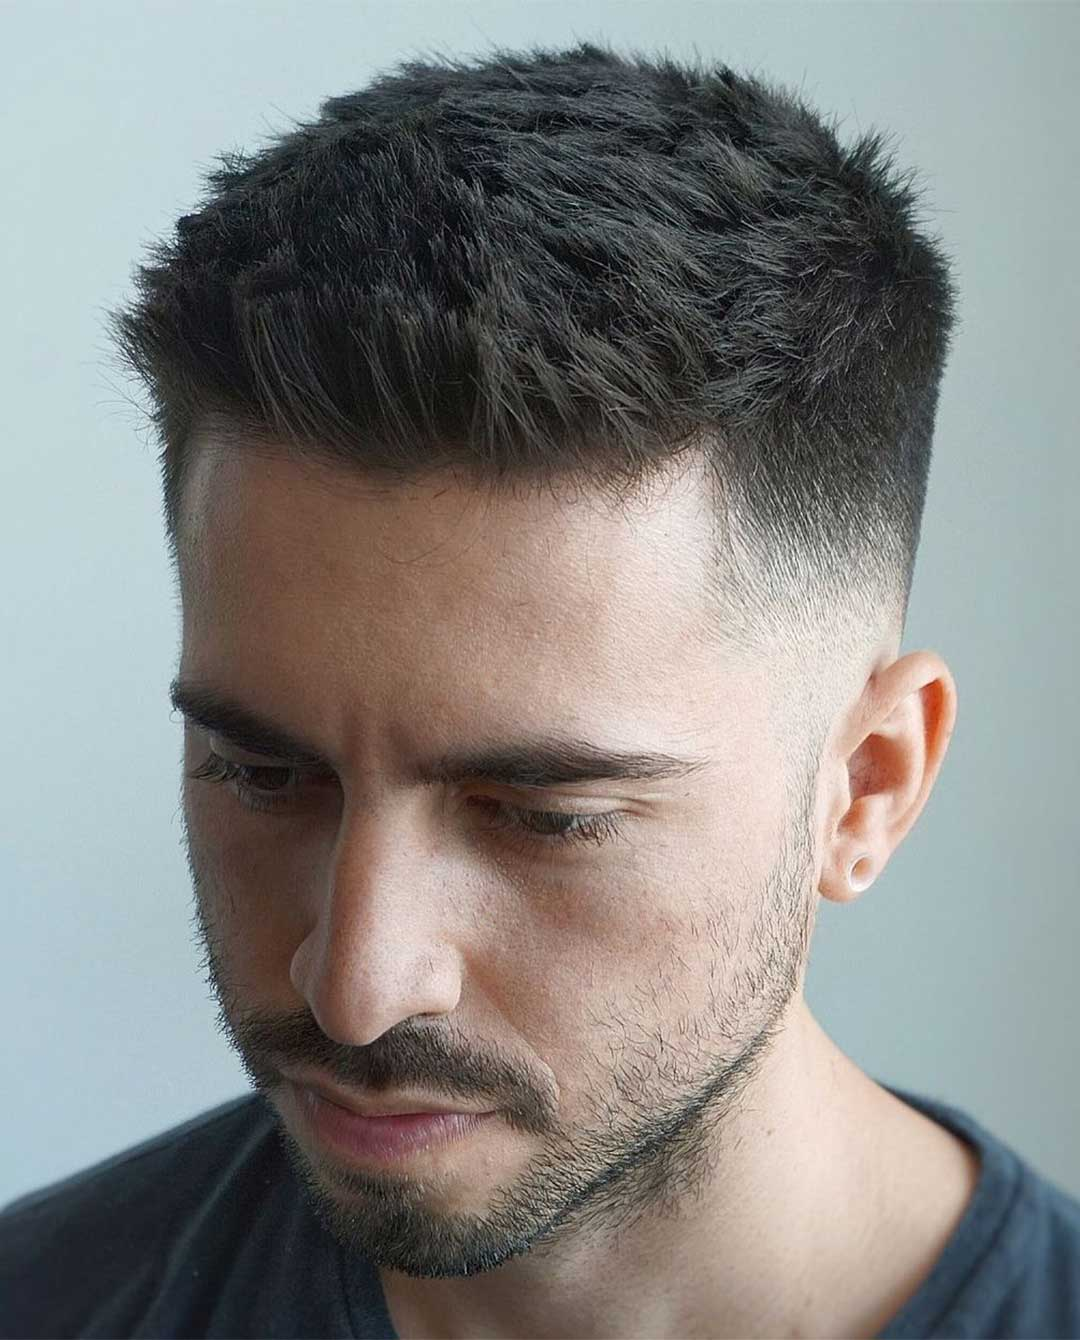 Quiff Hairstyles: 26+ Modern Quiff Haircuts for Men - Men's Hairstyle Tips